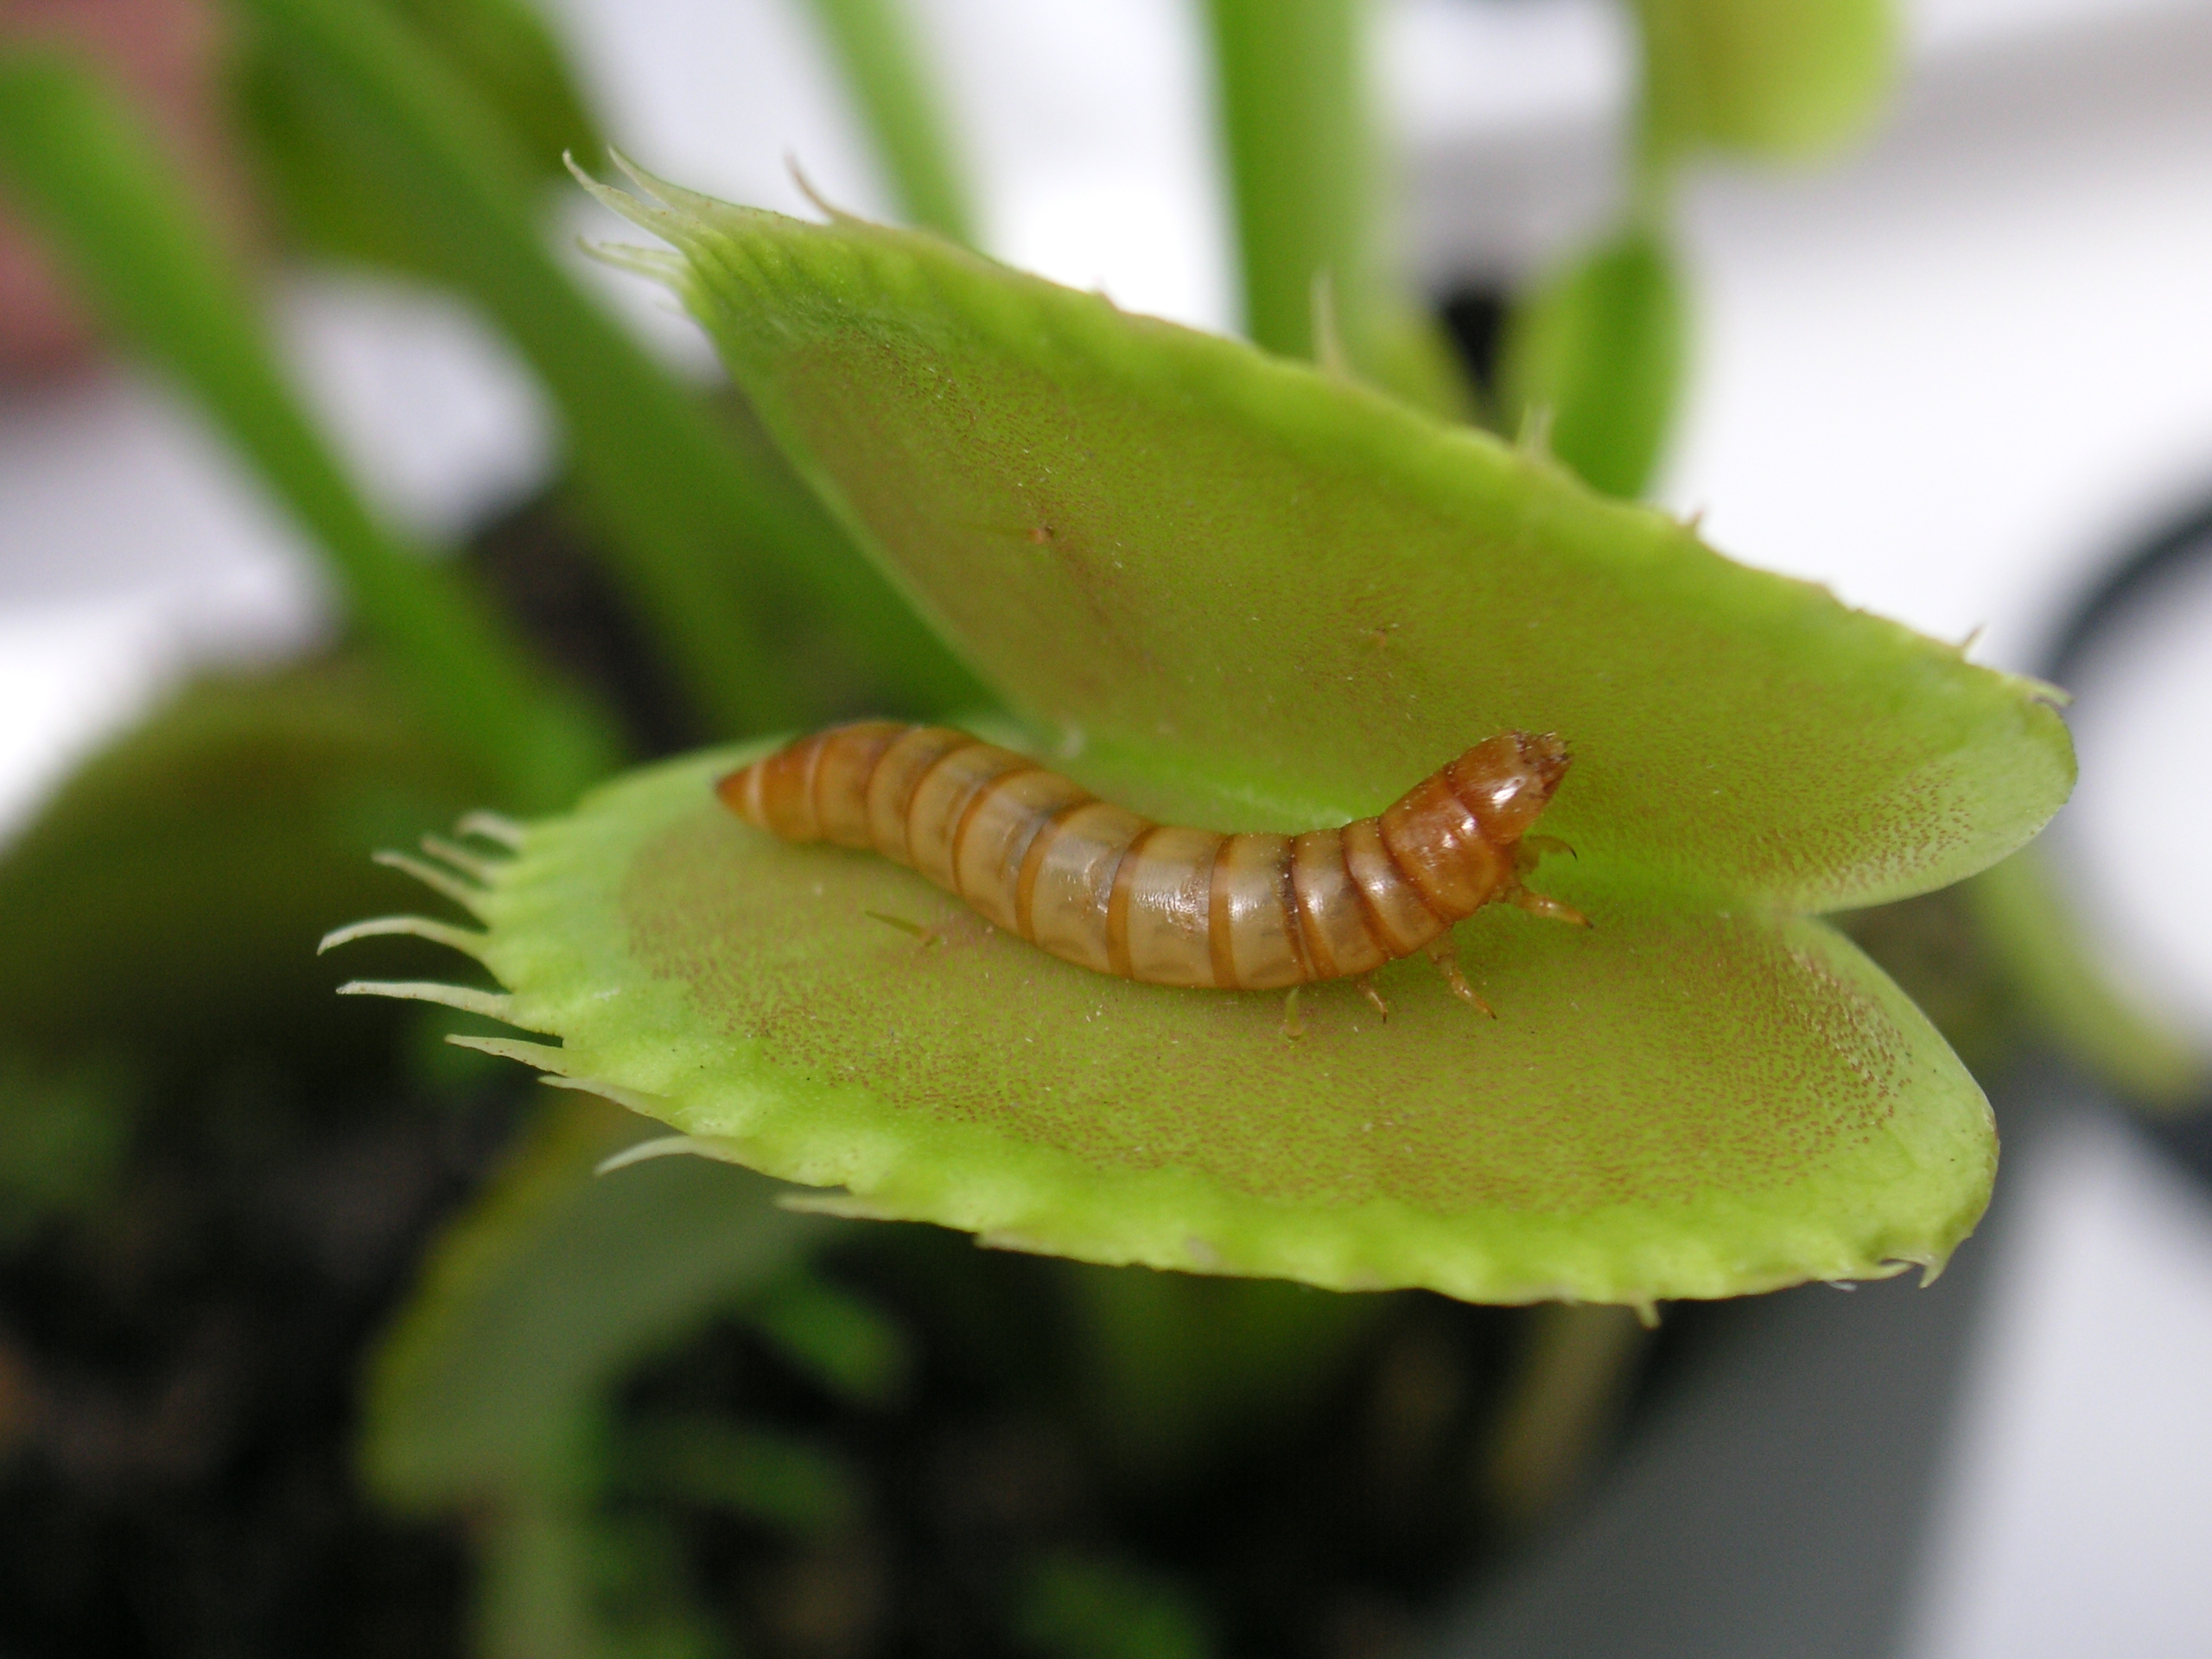 Plants - Cool Science Facts for Kids About PlantsEasy ... Carnivorous Plants Eating